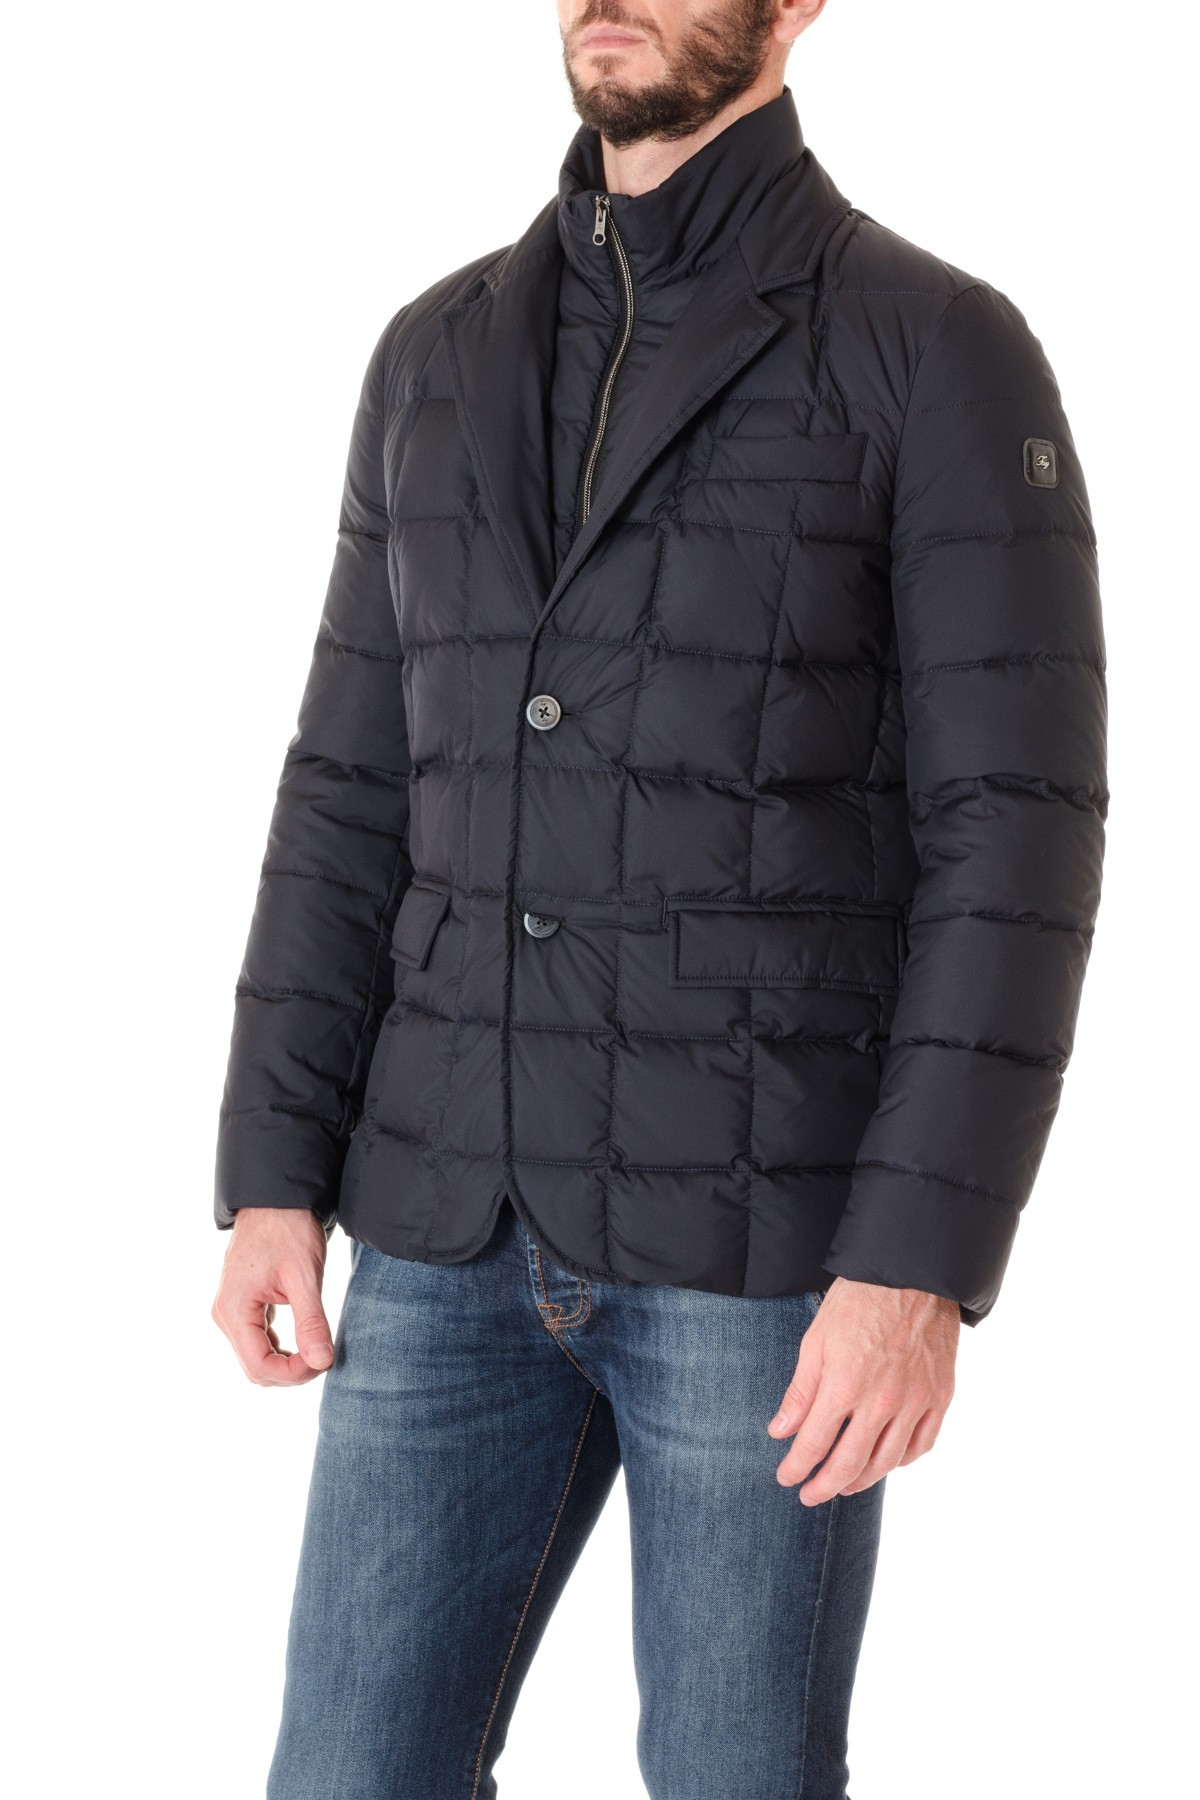 Fay F W 16 17 Blue Double Jacket For Men Rione Fontana